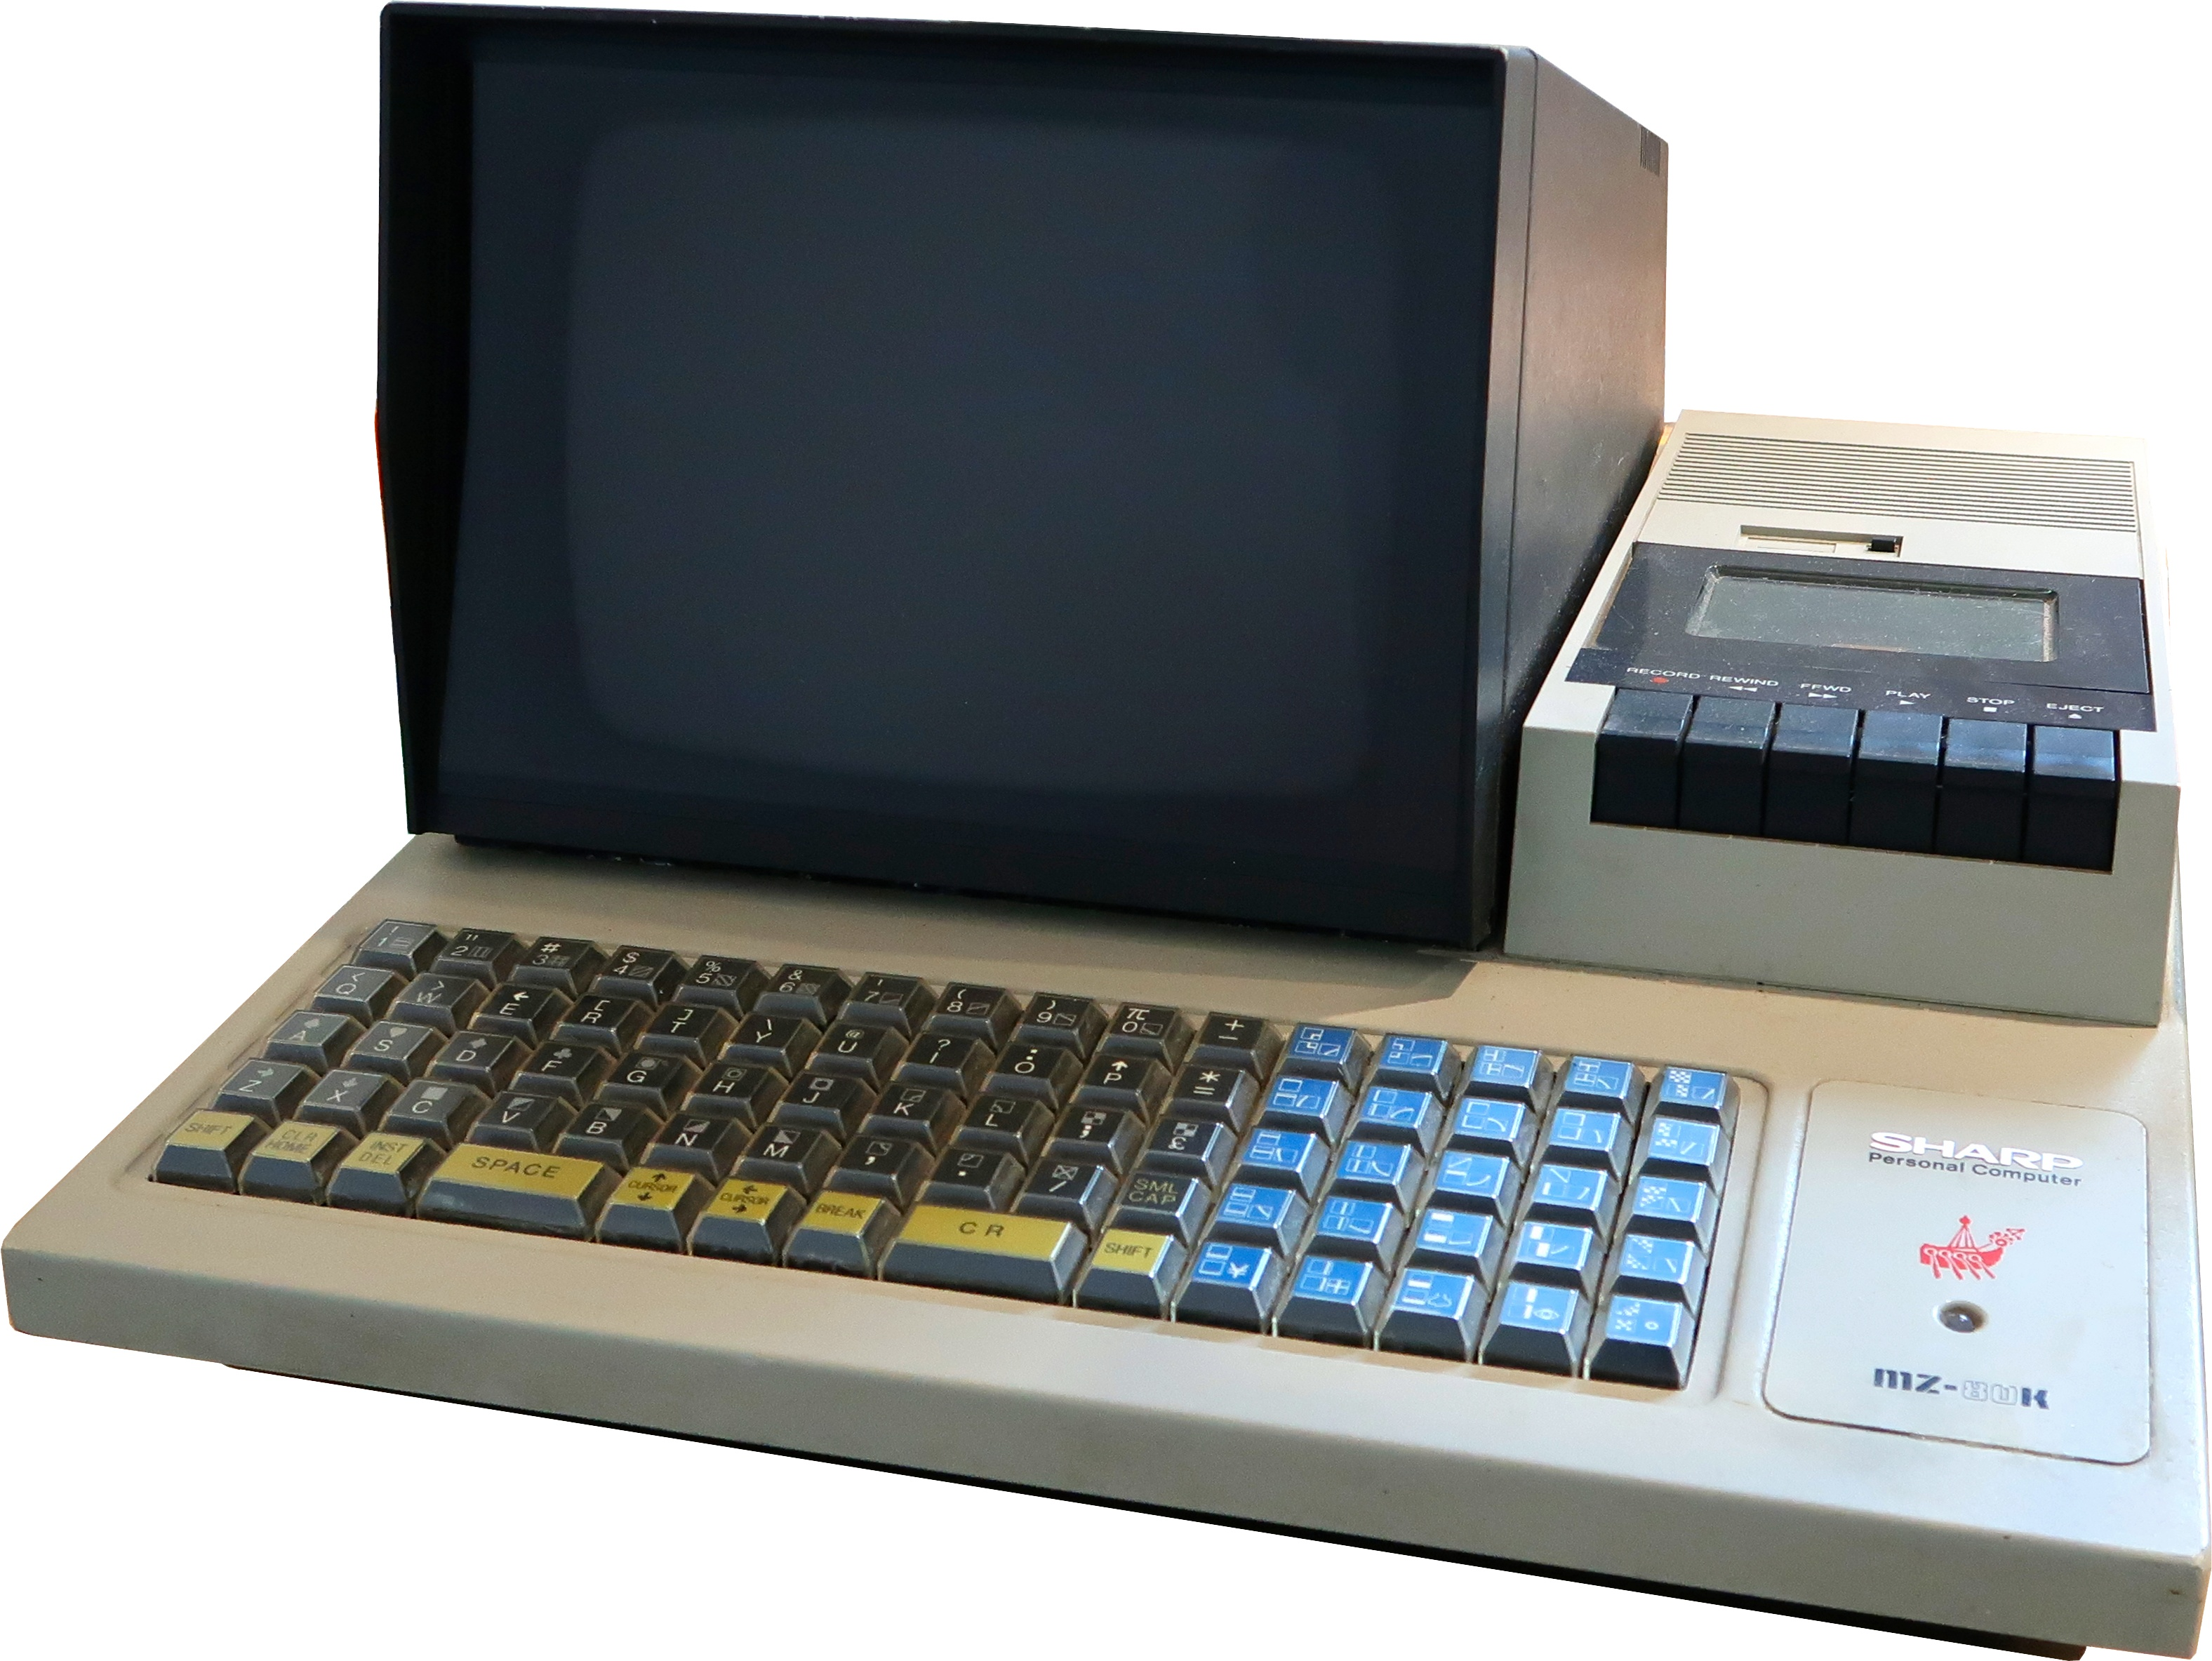 English Sharp MZ-80K computer